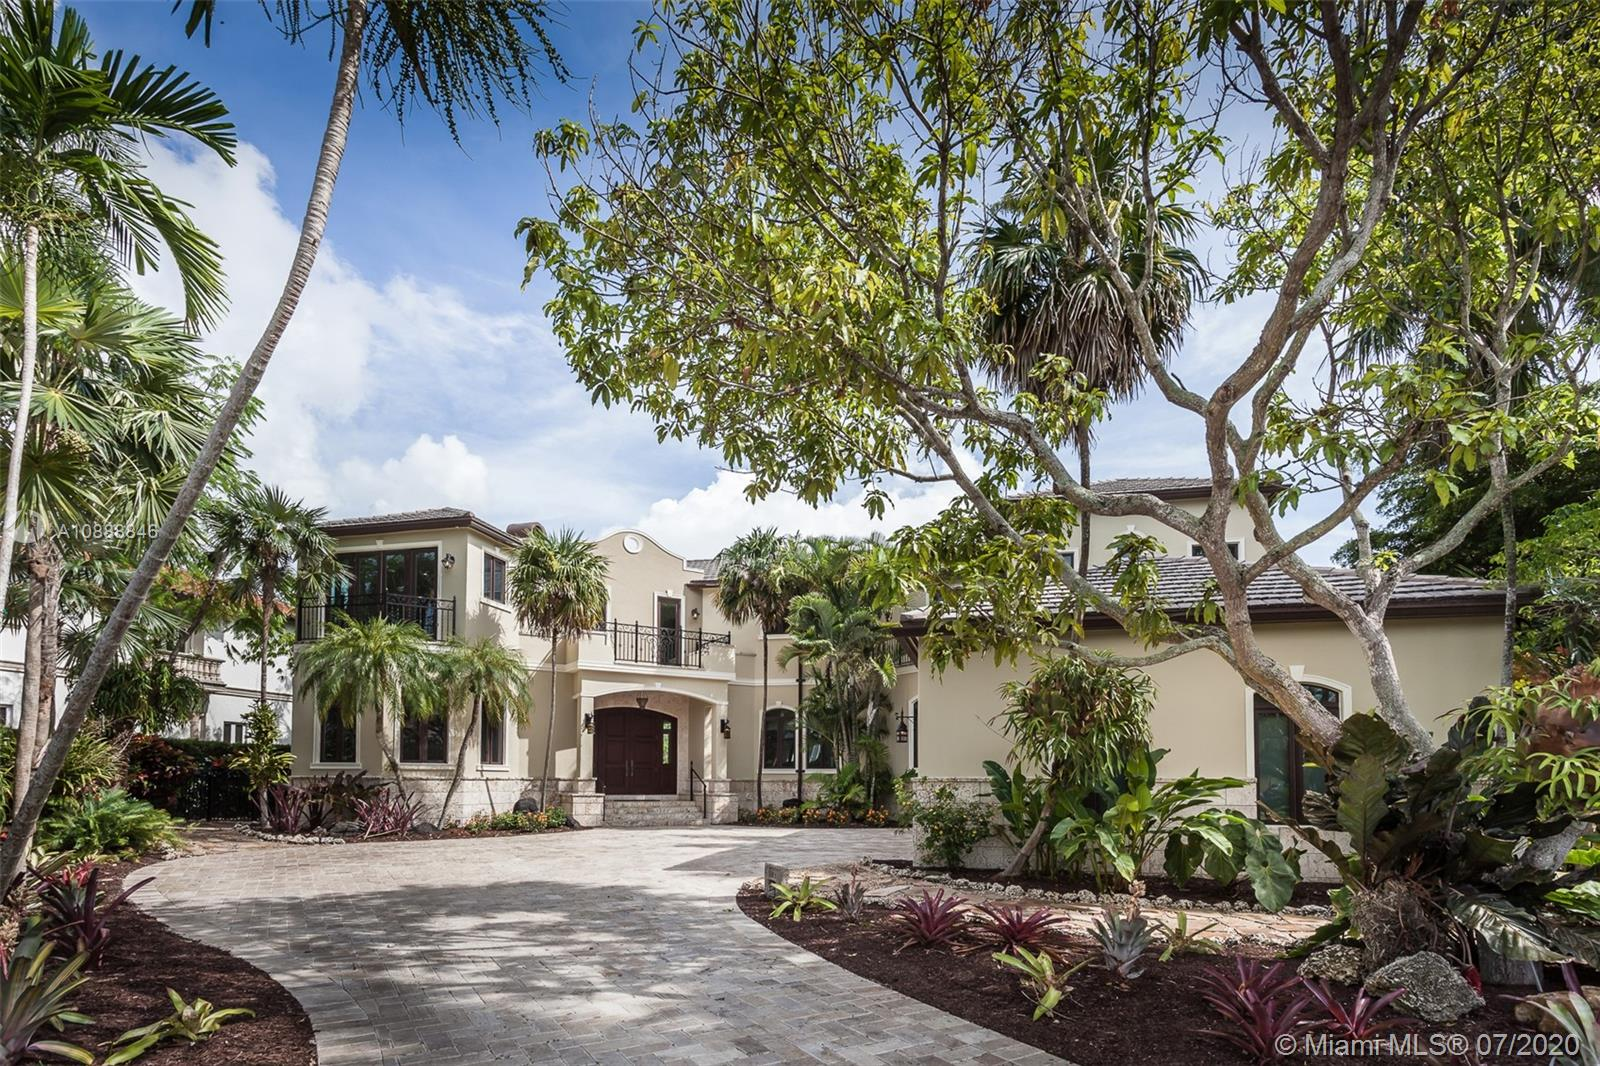 Elegant two-story home in the exclusive Cocoplum gated community. Built in 2003 with 4,901 Sq. Ft. and recently renovated, this beautiful 5BR/5+1BA home on the Coral Gables Waterway has its own private dock and pool, with balconies in the front overlooking landscaped grounds and a tranquil street. A spiral staircase in the patio leads to the terrace of the large master bedroom and seating area. Coffered ceilings with custom murals and custom-molding throughout the home offer a classic and grand look. The updated kitchen features a Thermador gas range with grill stove and warmer drawer, and Sub-Zero refrigerator and freezer with custom cabinet fronts.